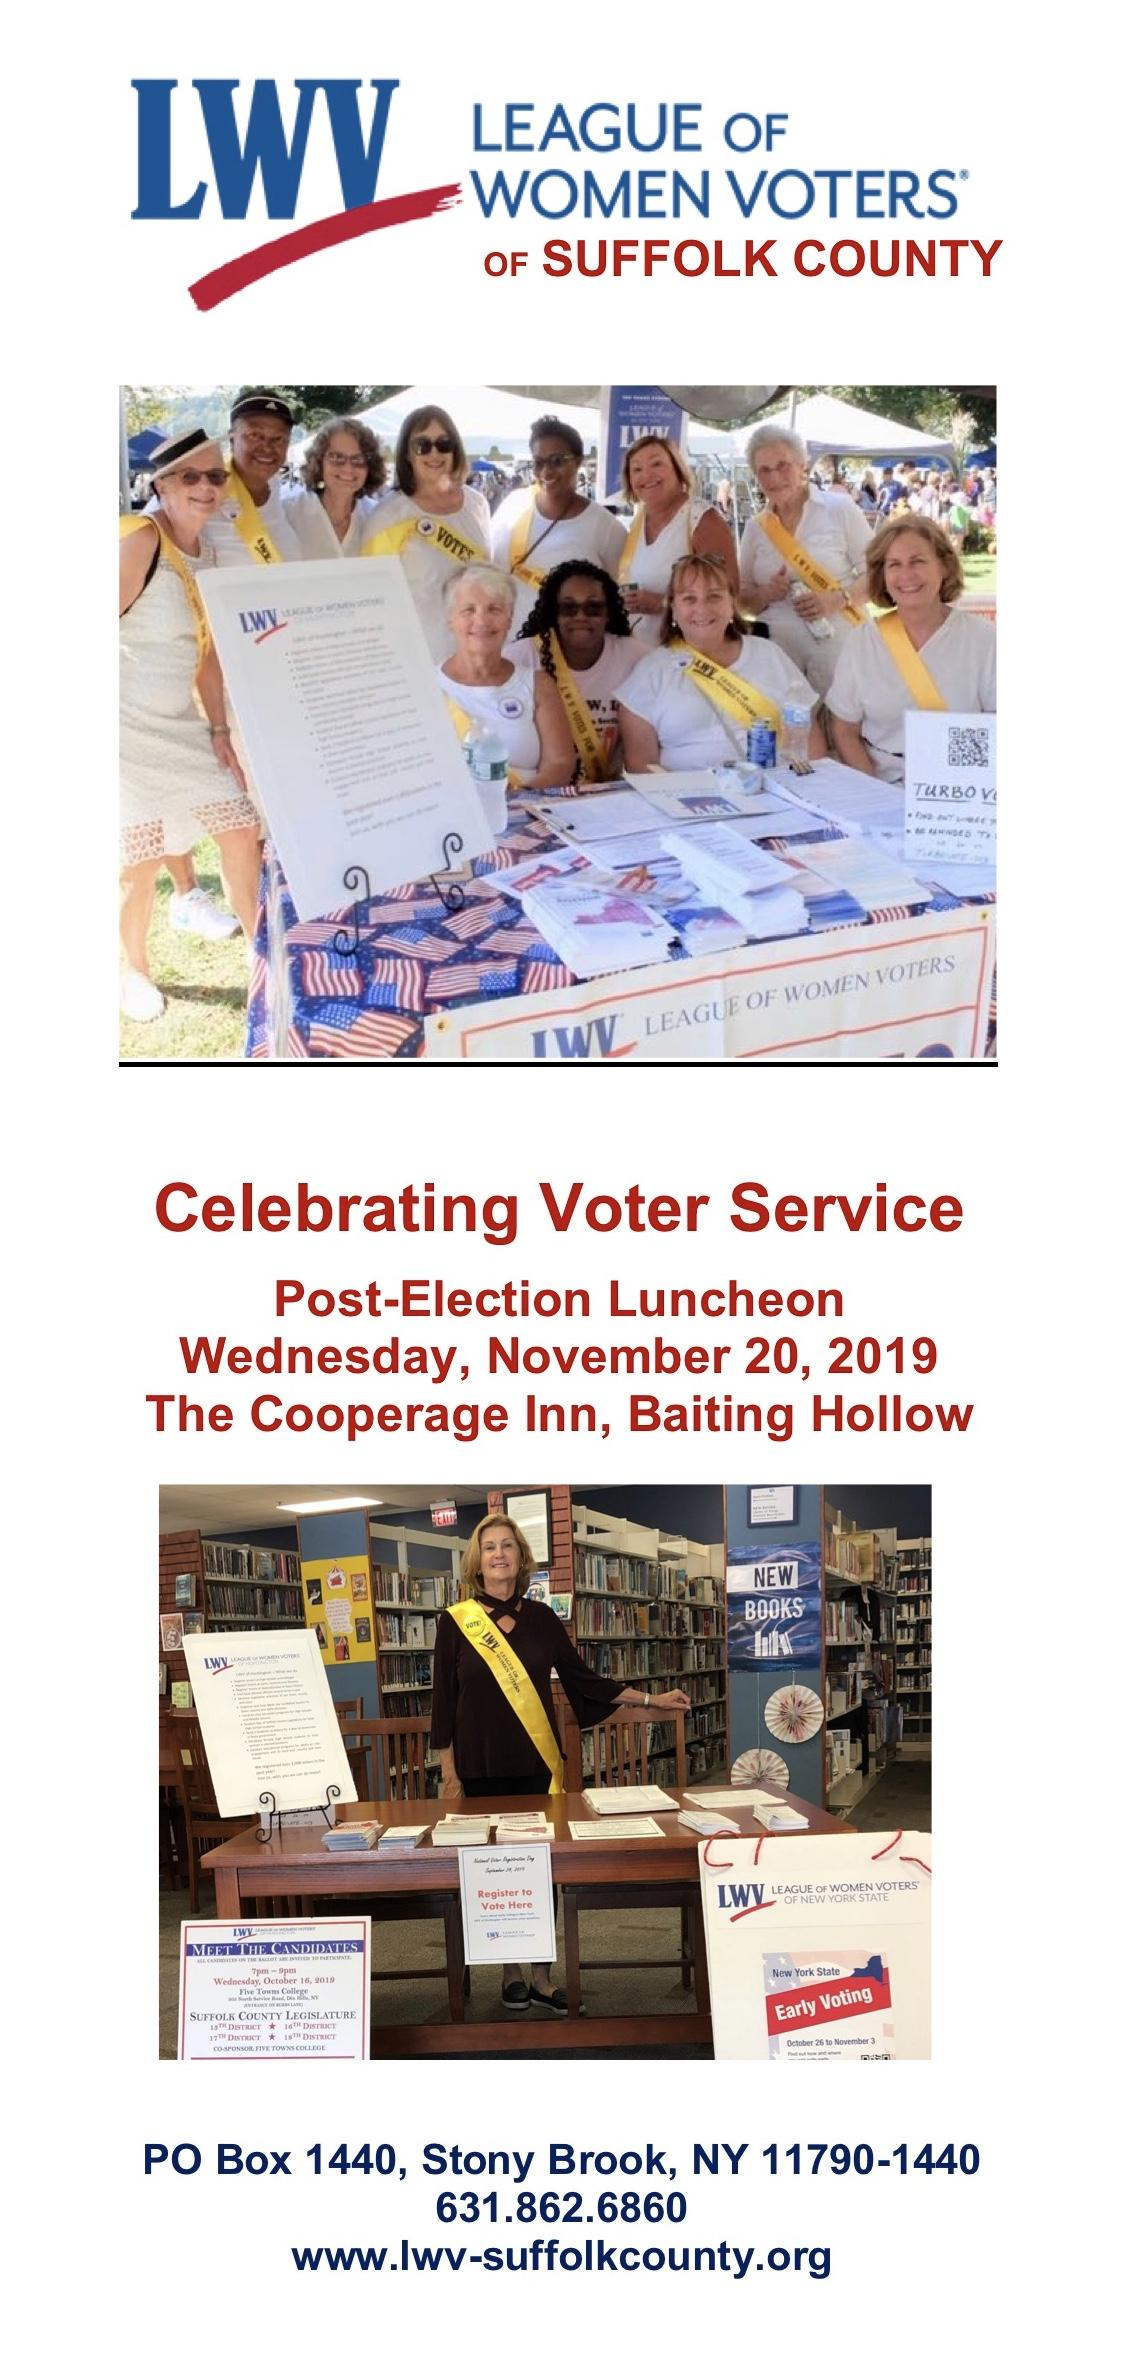 Voter Services Trifold Cover